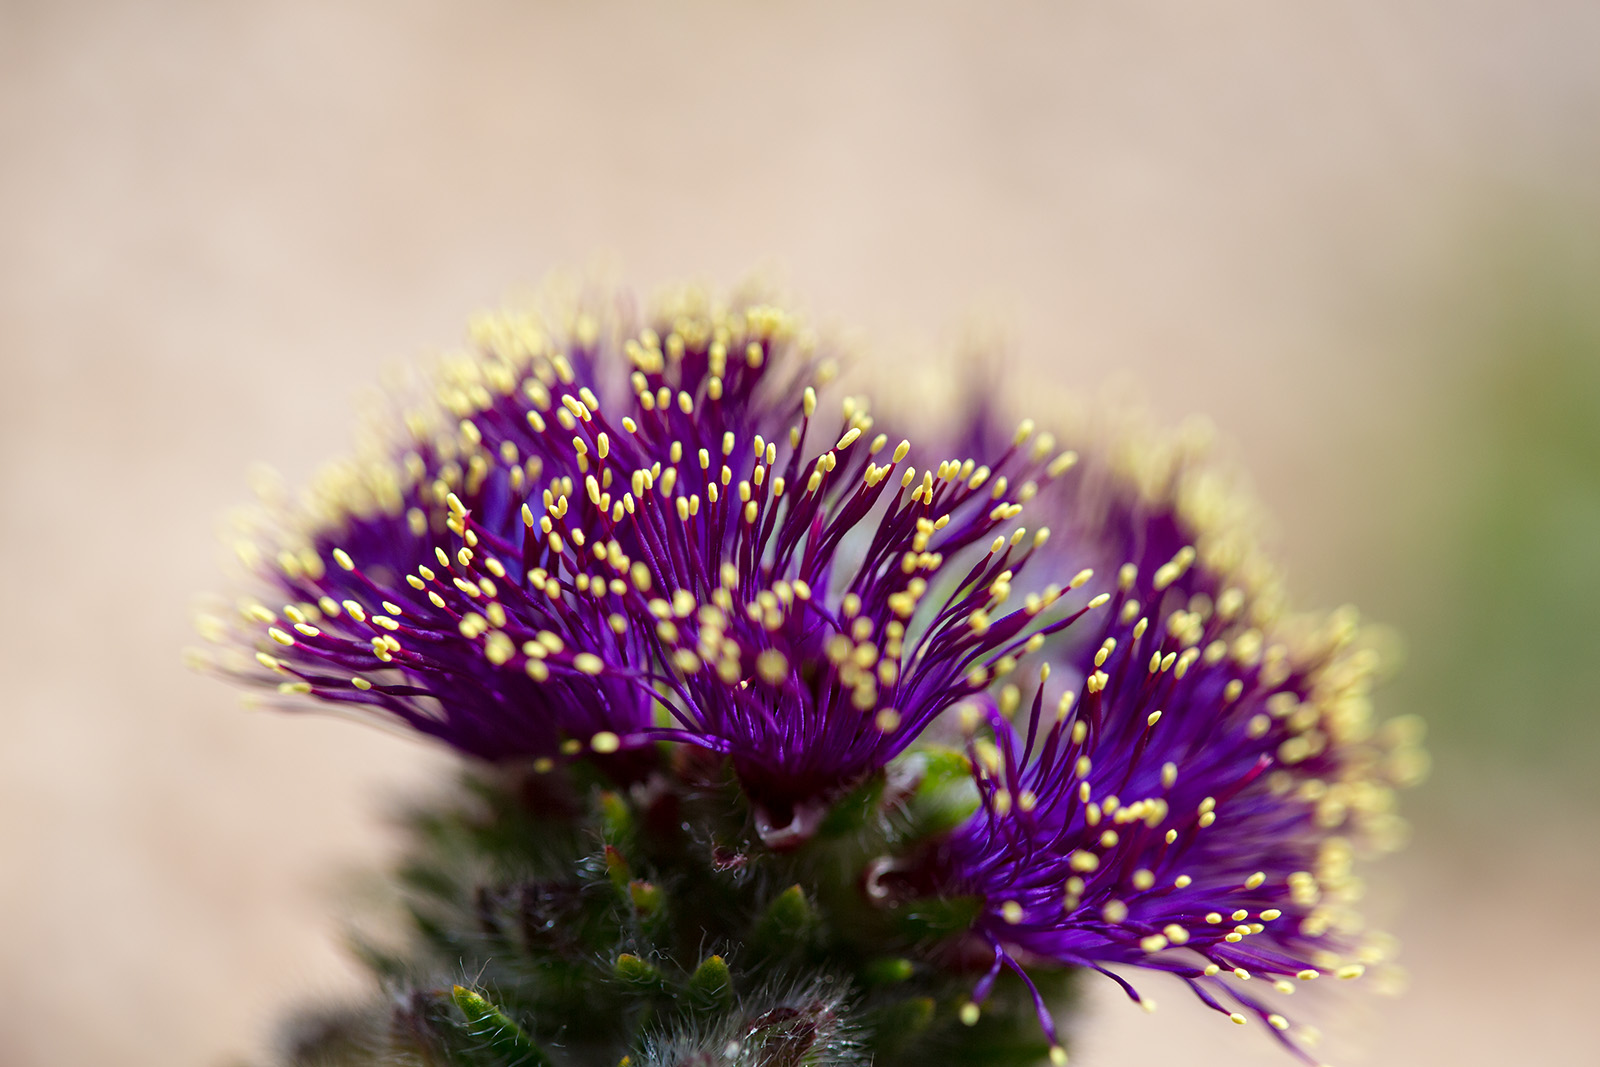 Close-up of Melaleuca hadra